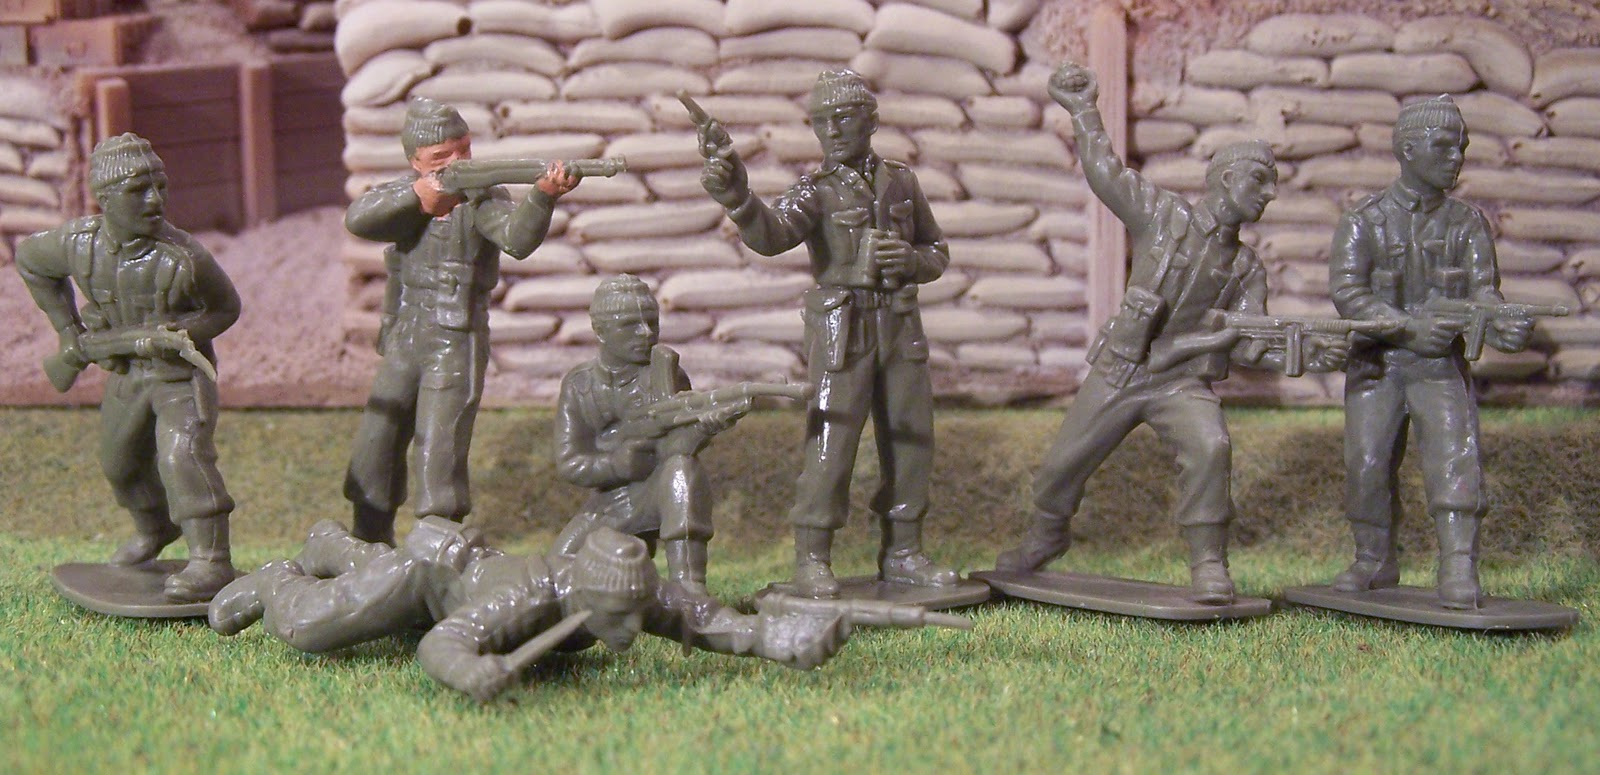 Wwii Plastic Toy Soldiers Introducing The British Commandos